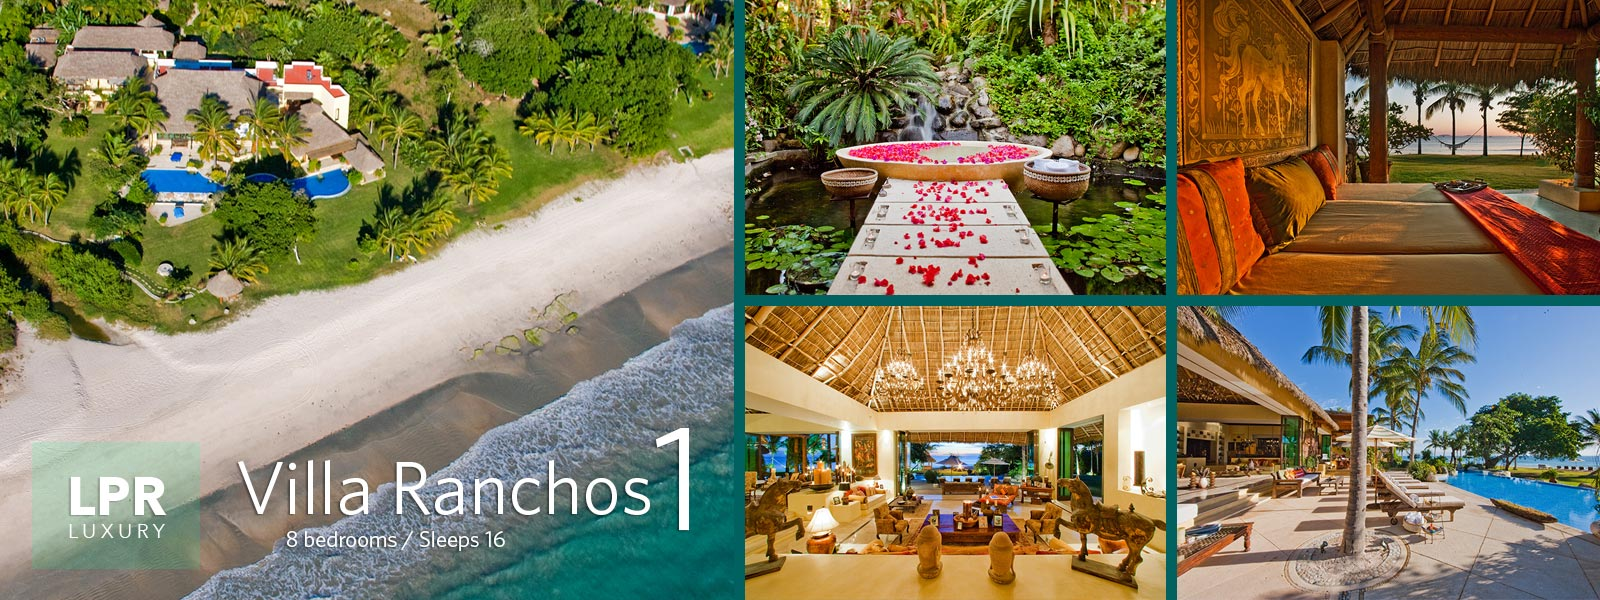 Villa Ranchos 1 - Luxury Vacation Rental Villa at the Punta Mita Resort, Riviera Nayarit, Mexico